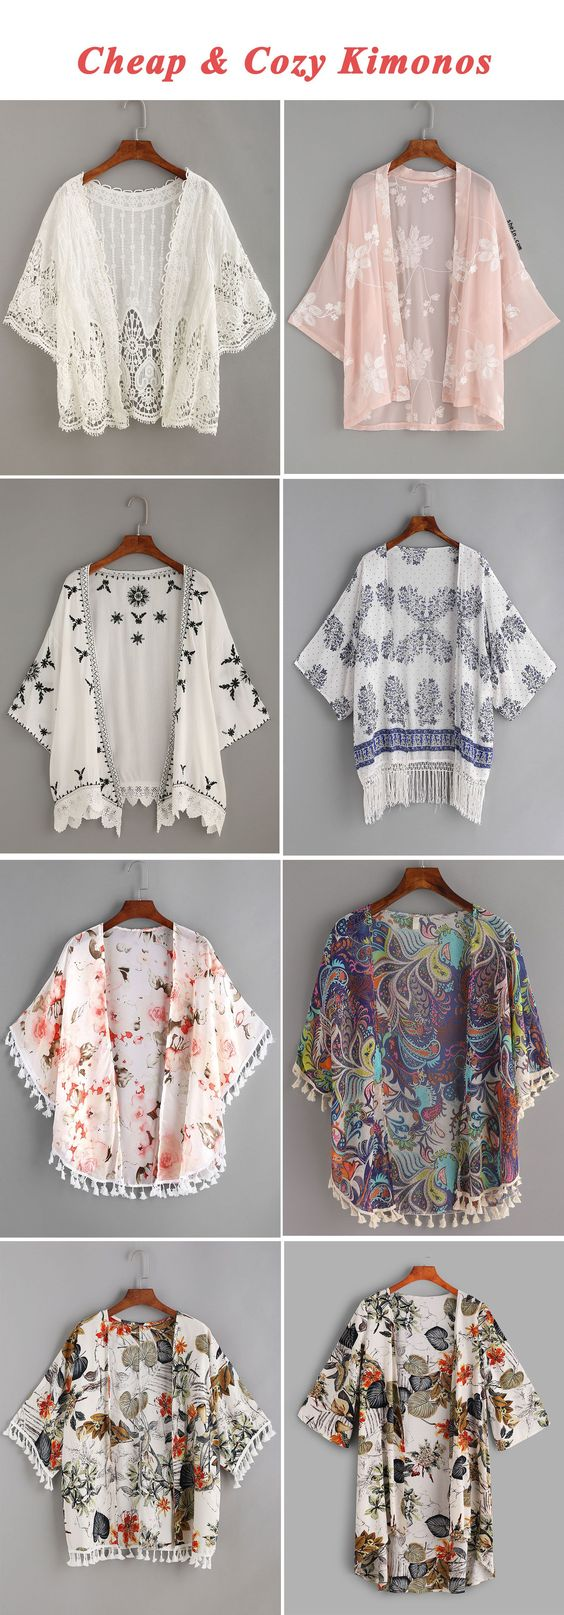 best images about country clothing on pinterest summer summer